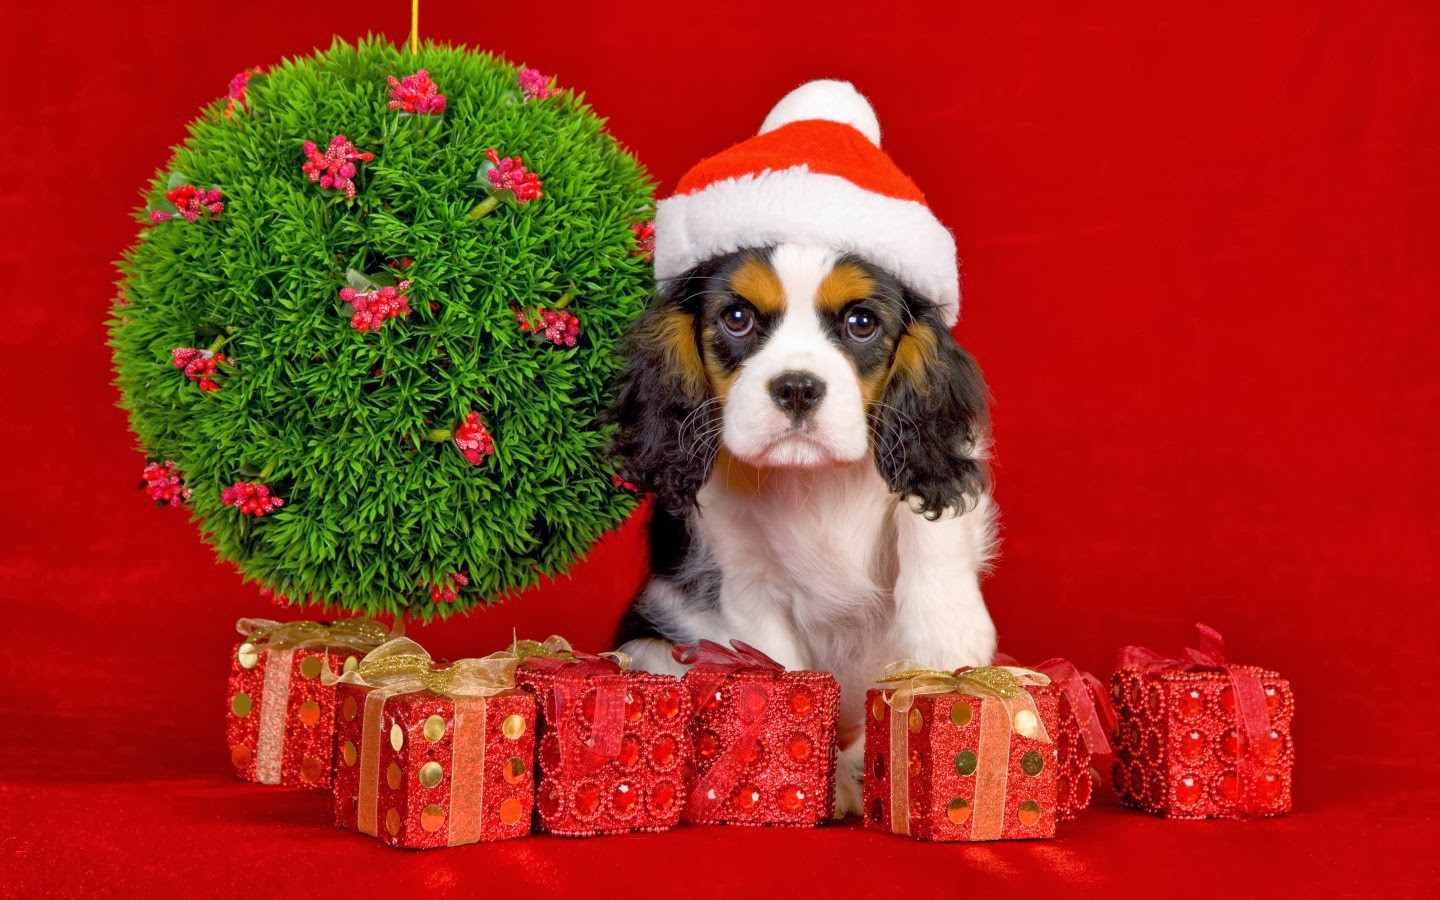 Best ideas about Dog Christmas Gift Ideas . Save or Pin Best Christmas Gift Ideas for your Dogs Now.